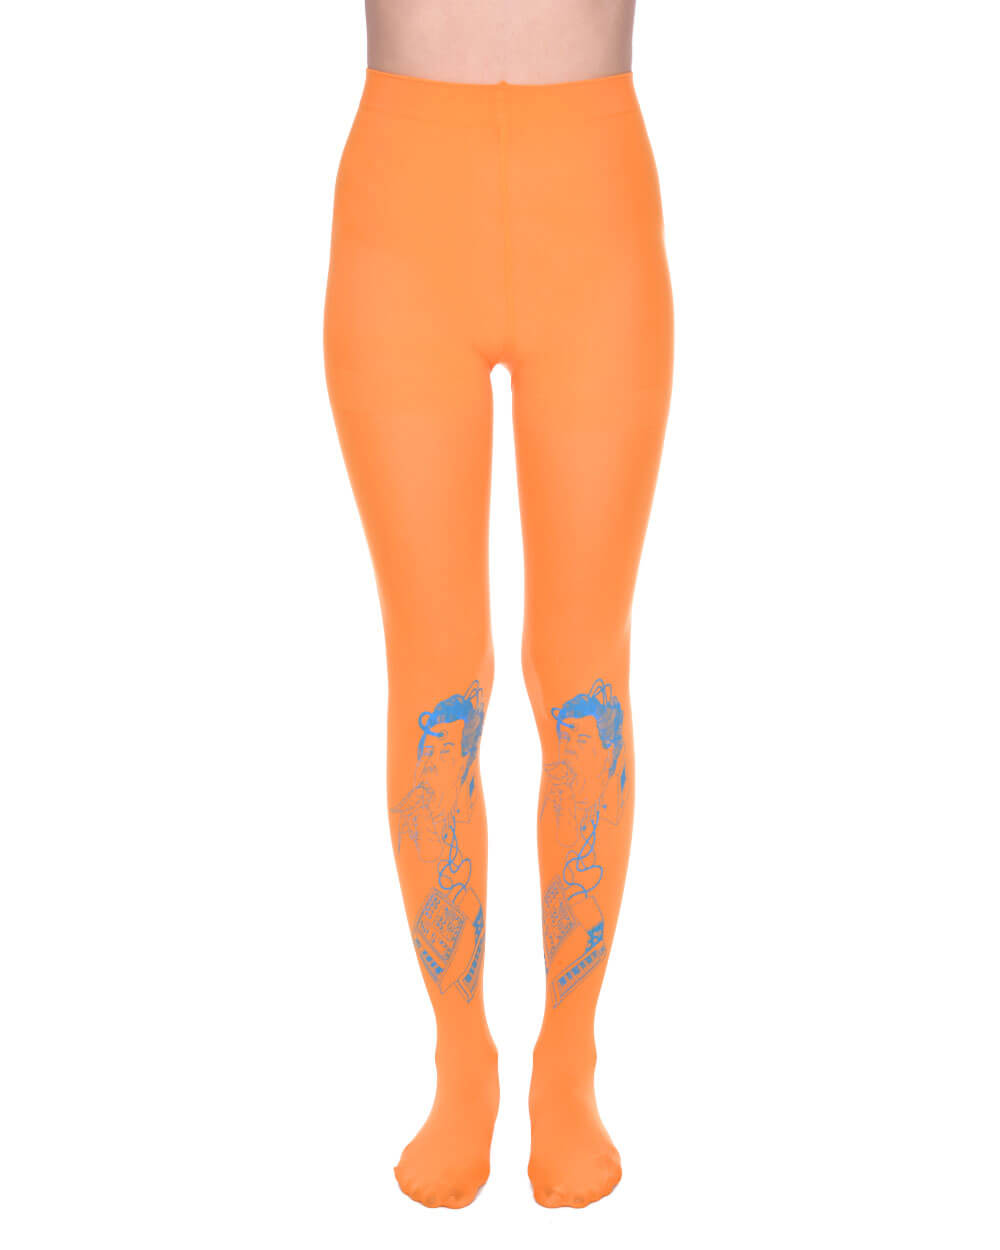 ELECTRO ORANGE TIGHTS - Eros Mortis